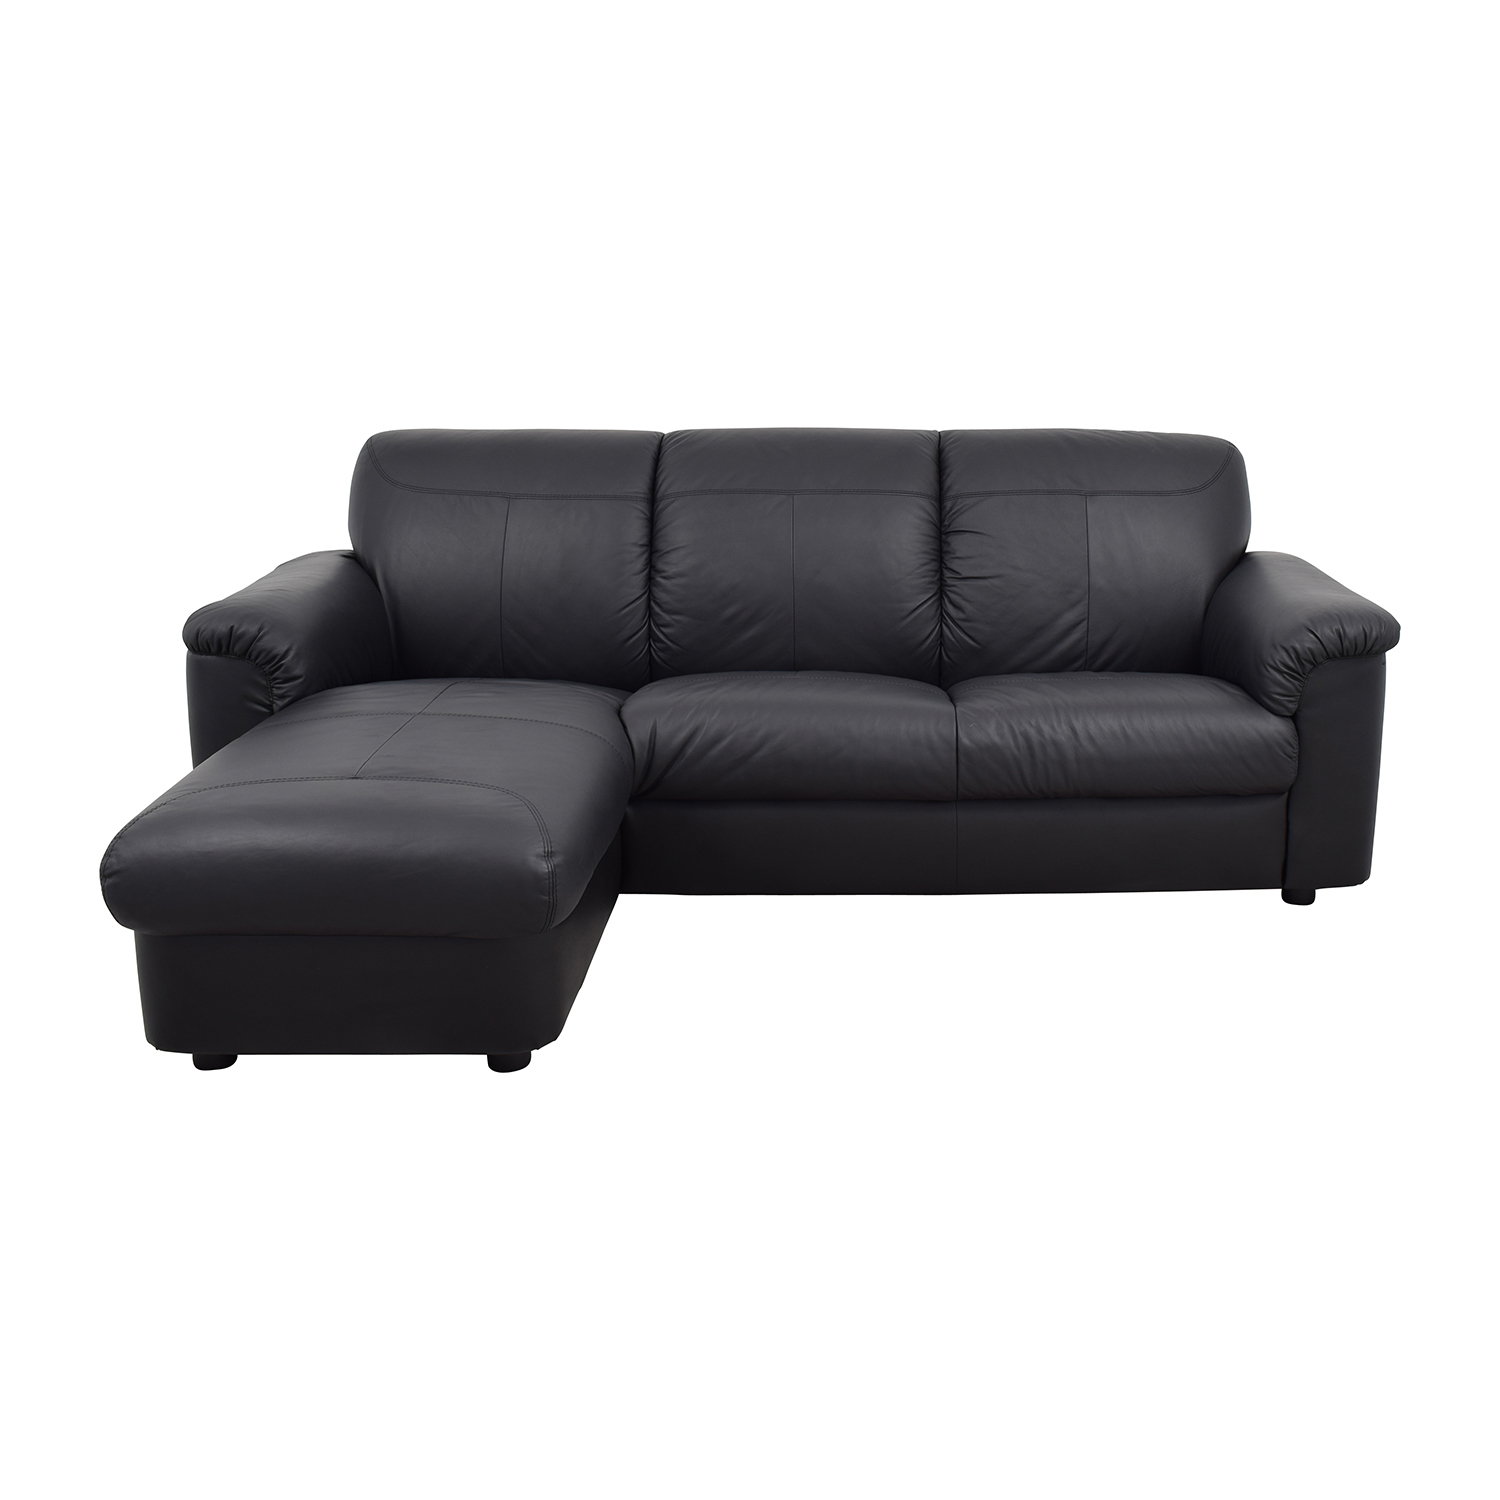 41% OFF IKEA IKEA Black 3 Piece Leather Sectional Sofas